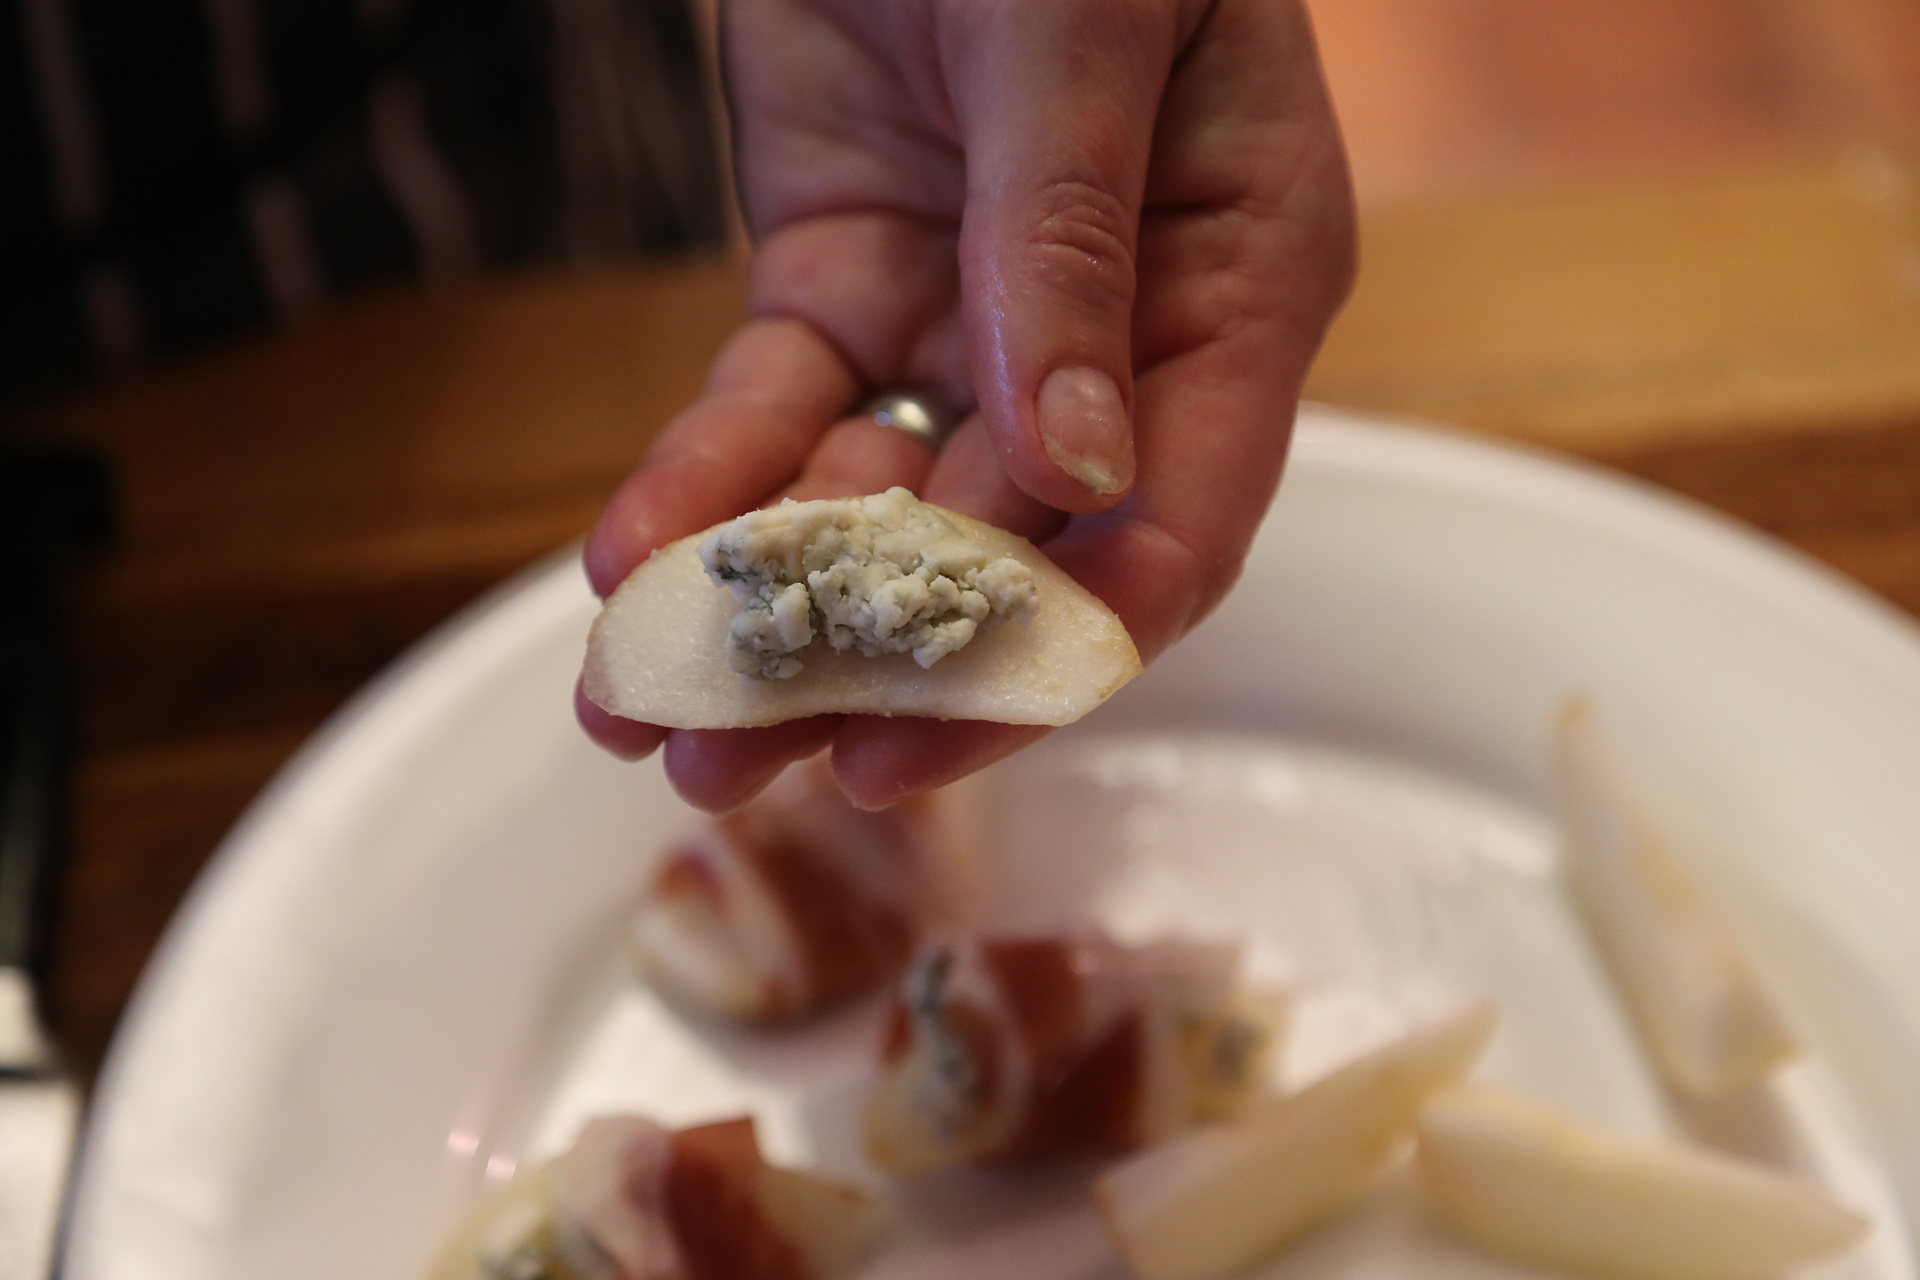 On each pear slice, press 1 tsp of blue cheese into a pile.